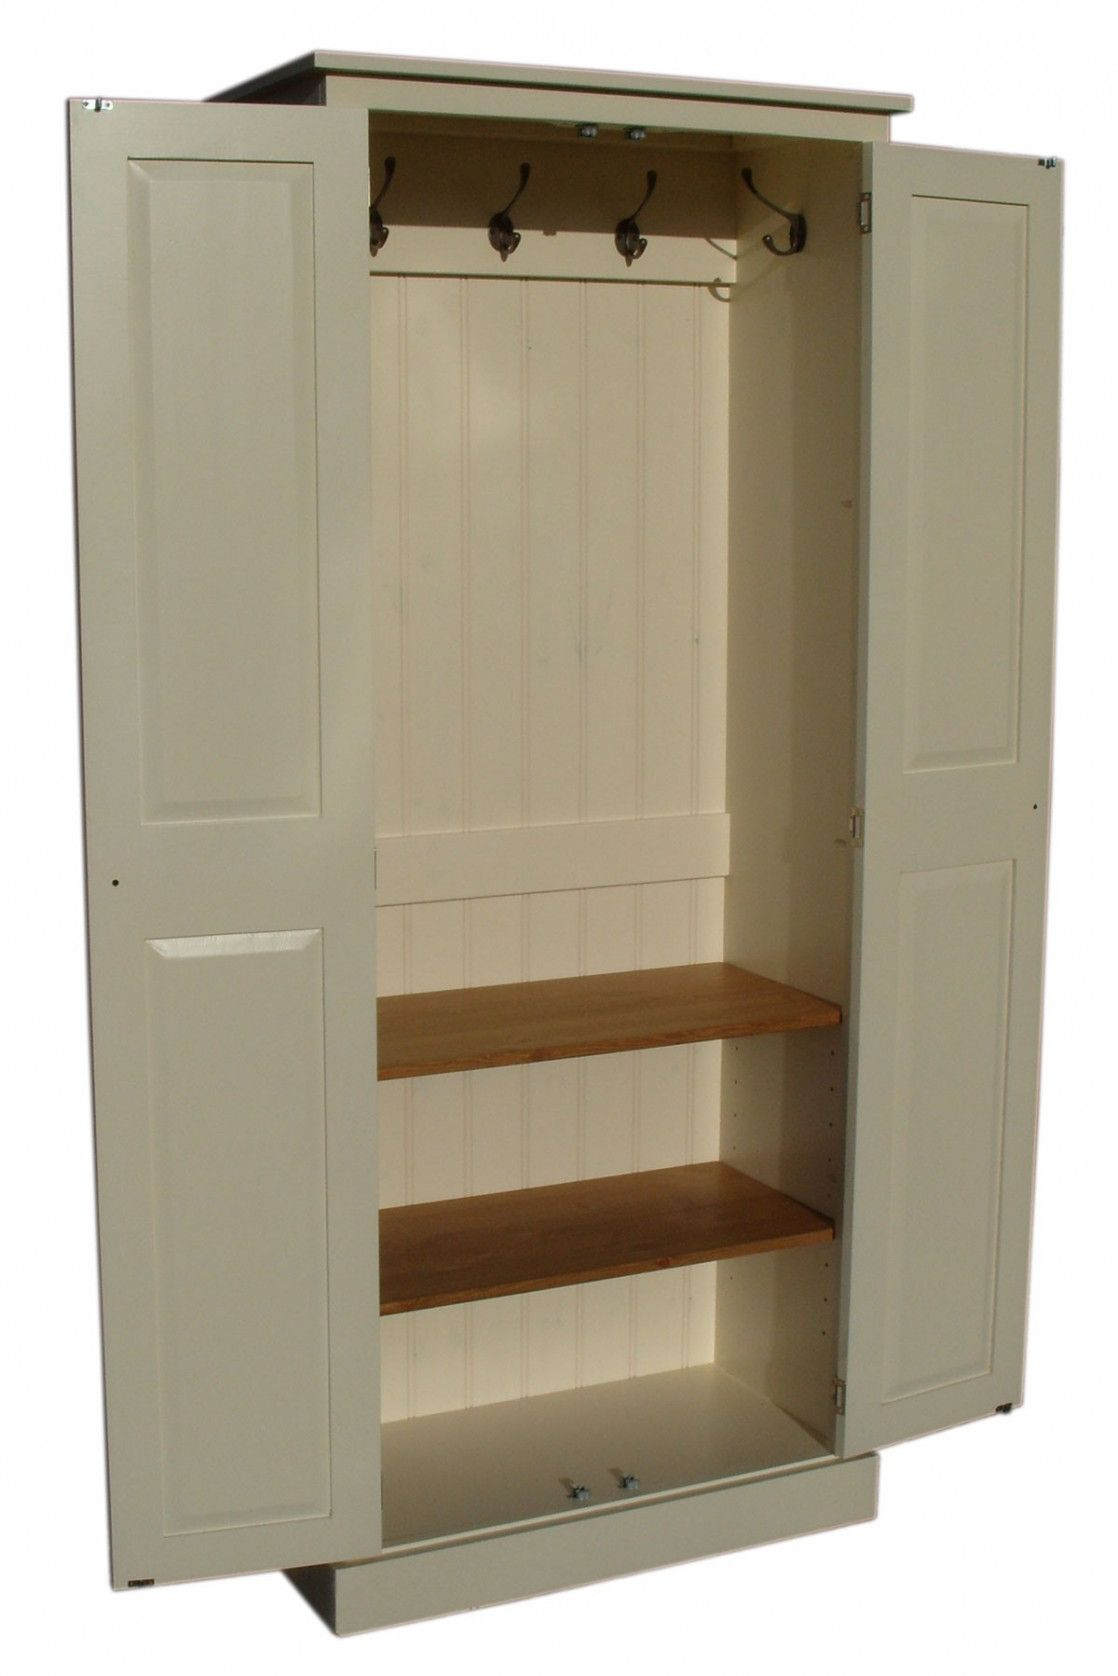 20 Coat And Shoe Storage Cabinet Kitchen Design Layout Ideas Check More At